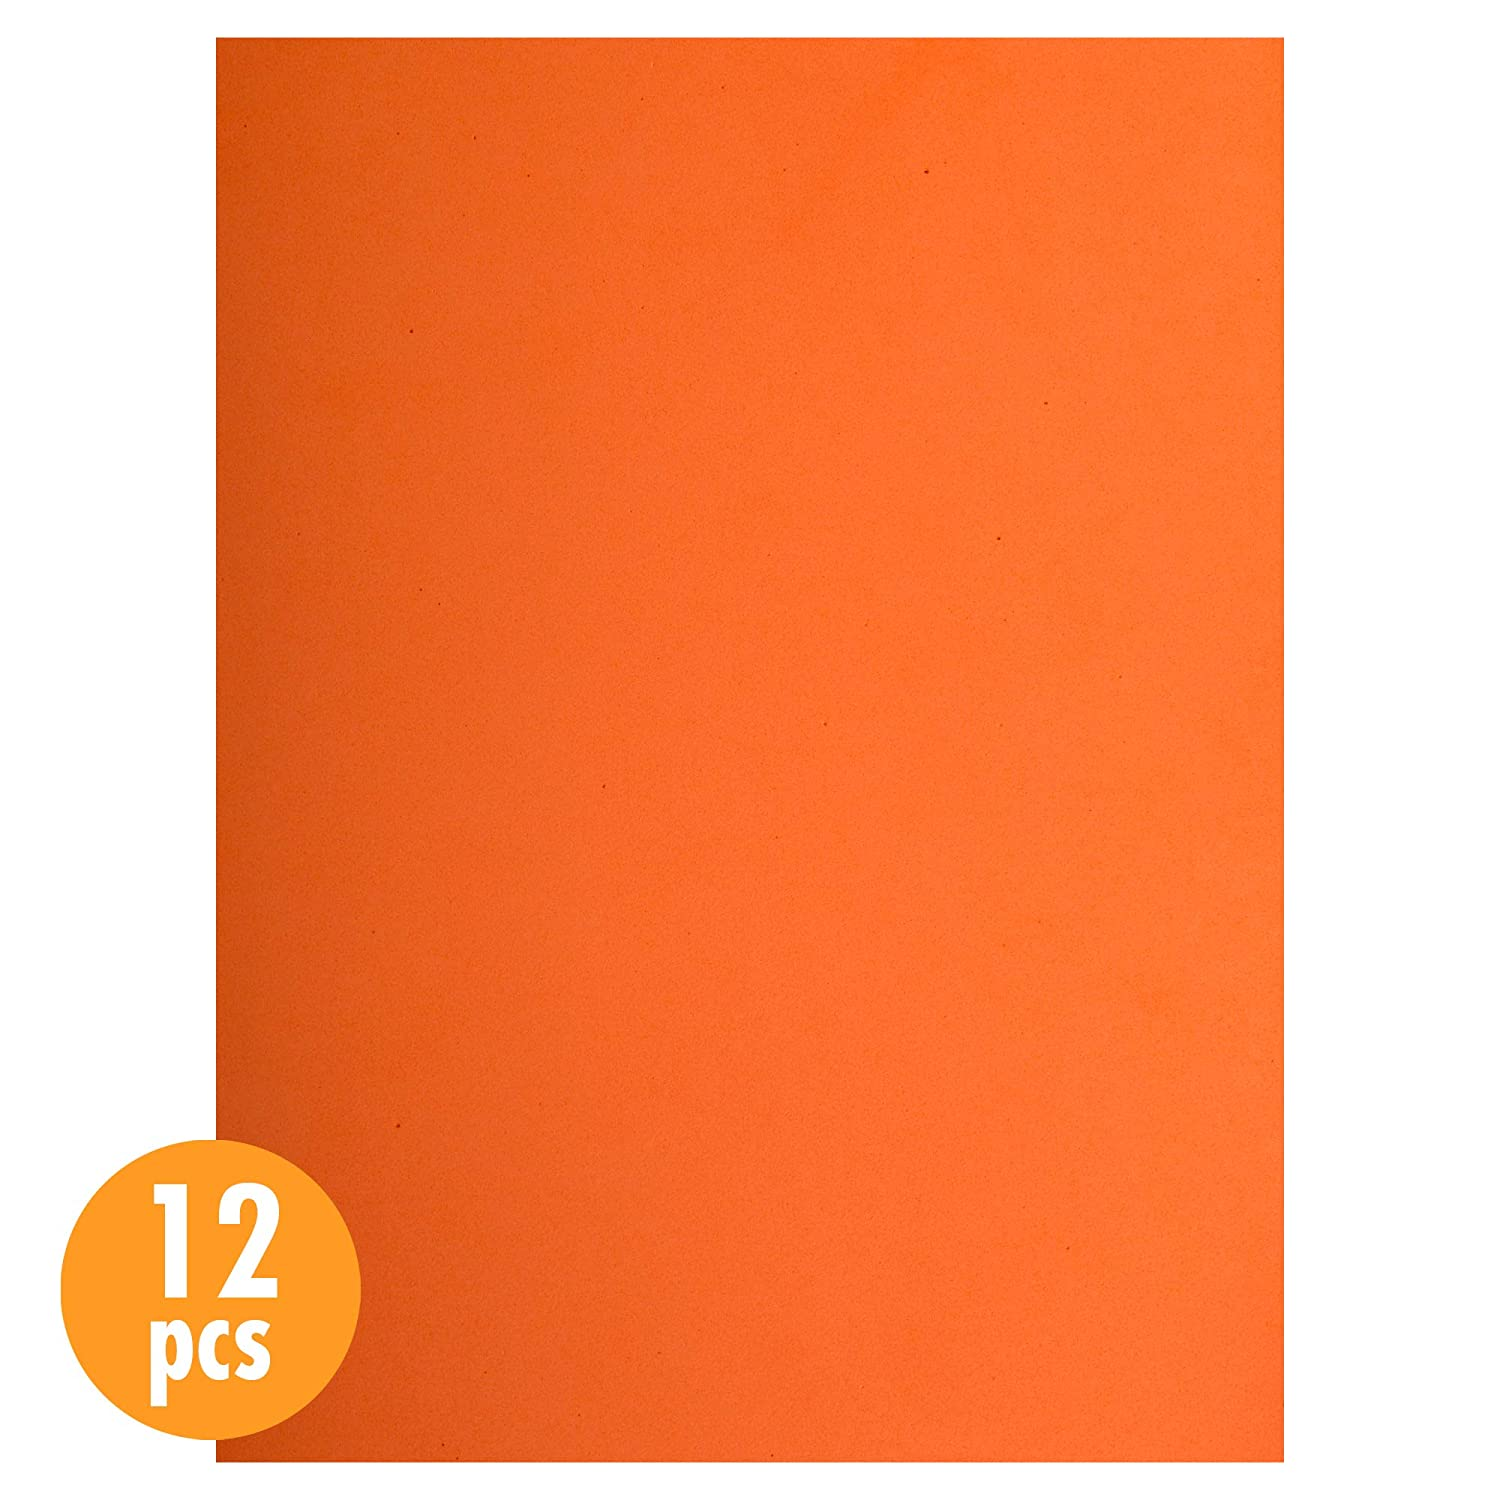 Peach 12 Pieces Time 4 Crafts Craft EVA Foam Sheets 9 x 12 inches